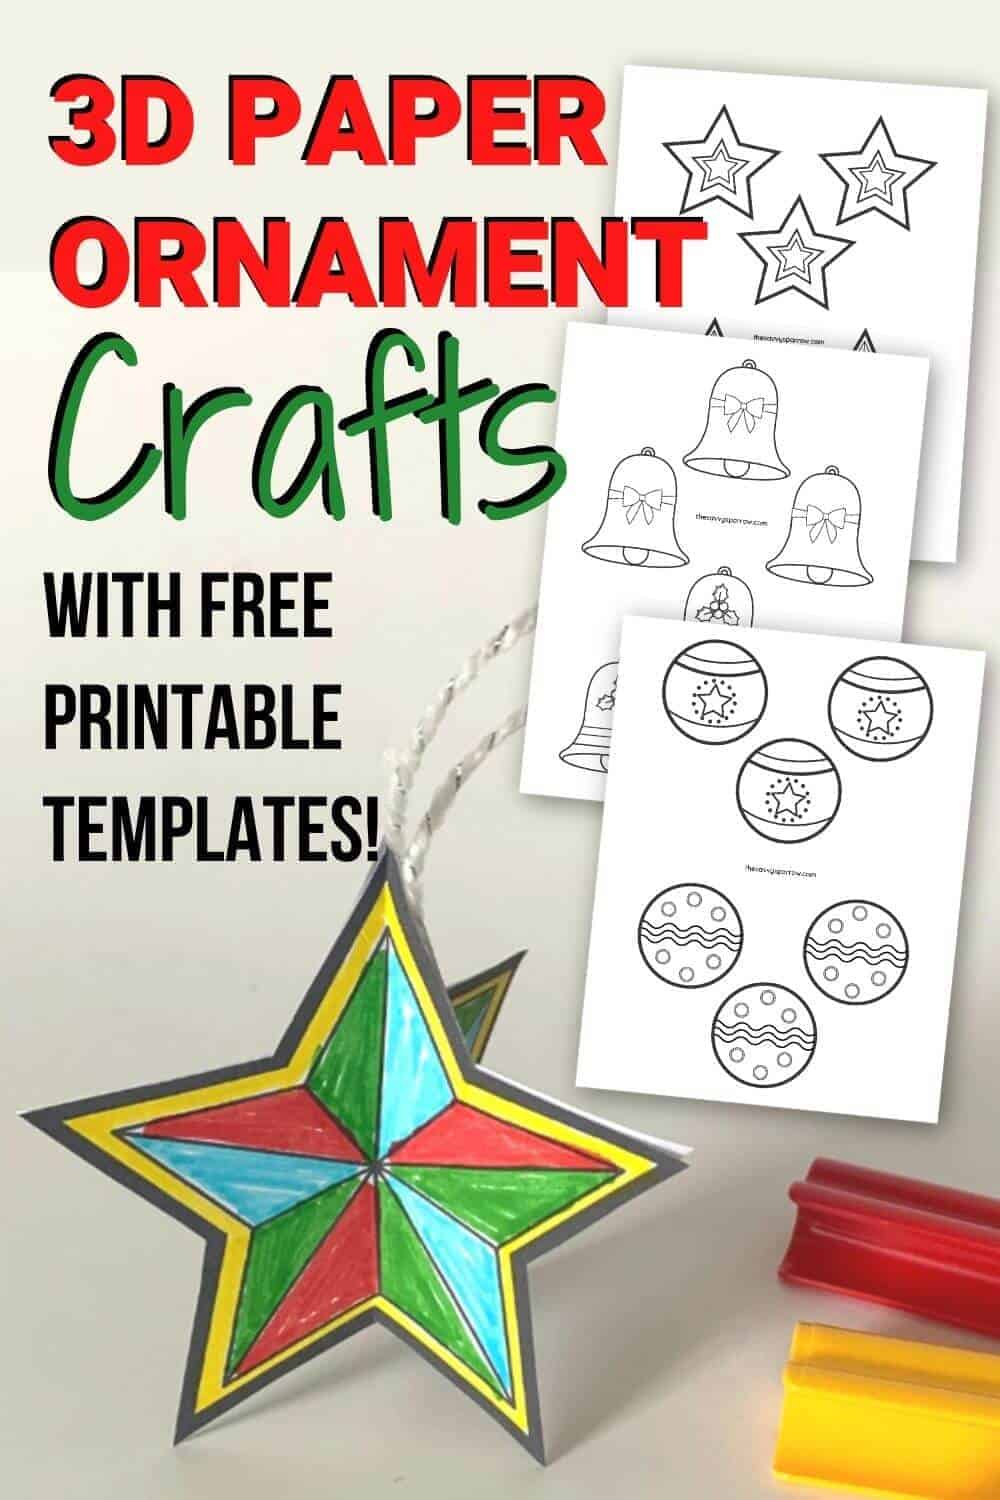 3D paper Christmas ornament crafts for kids